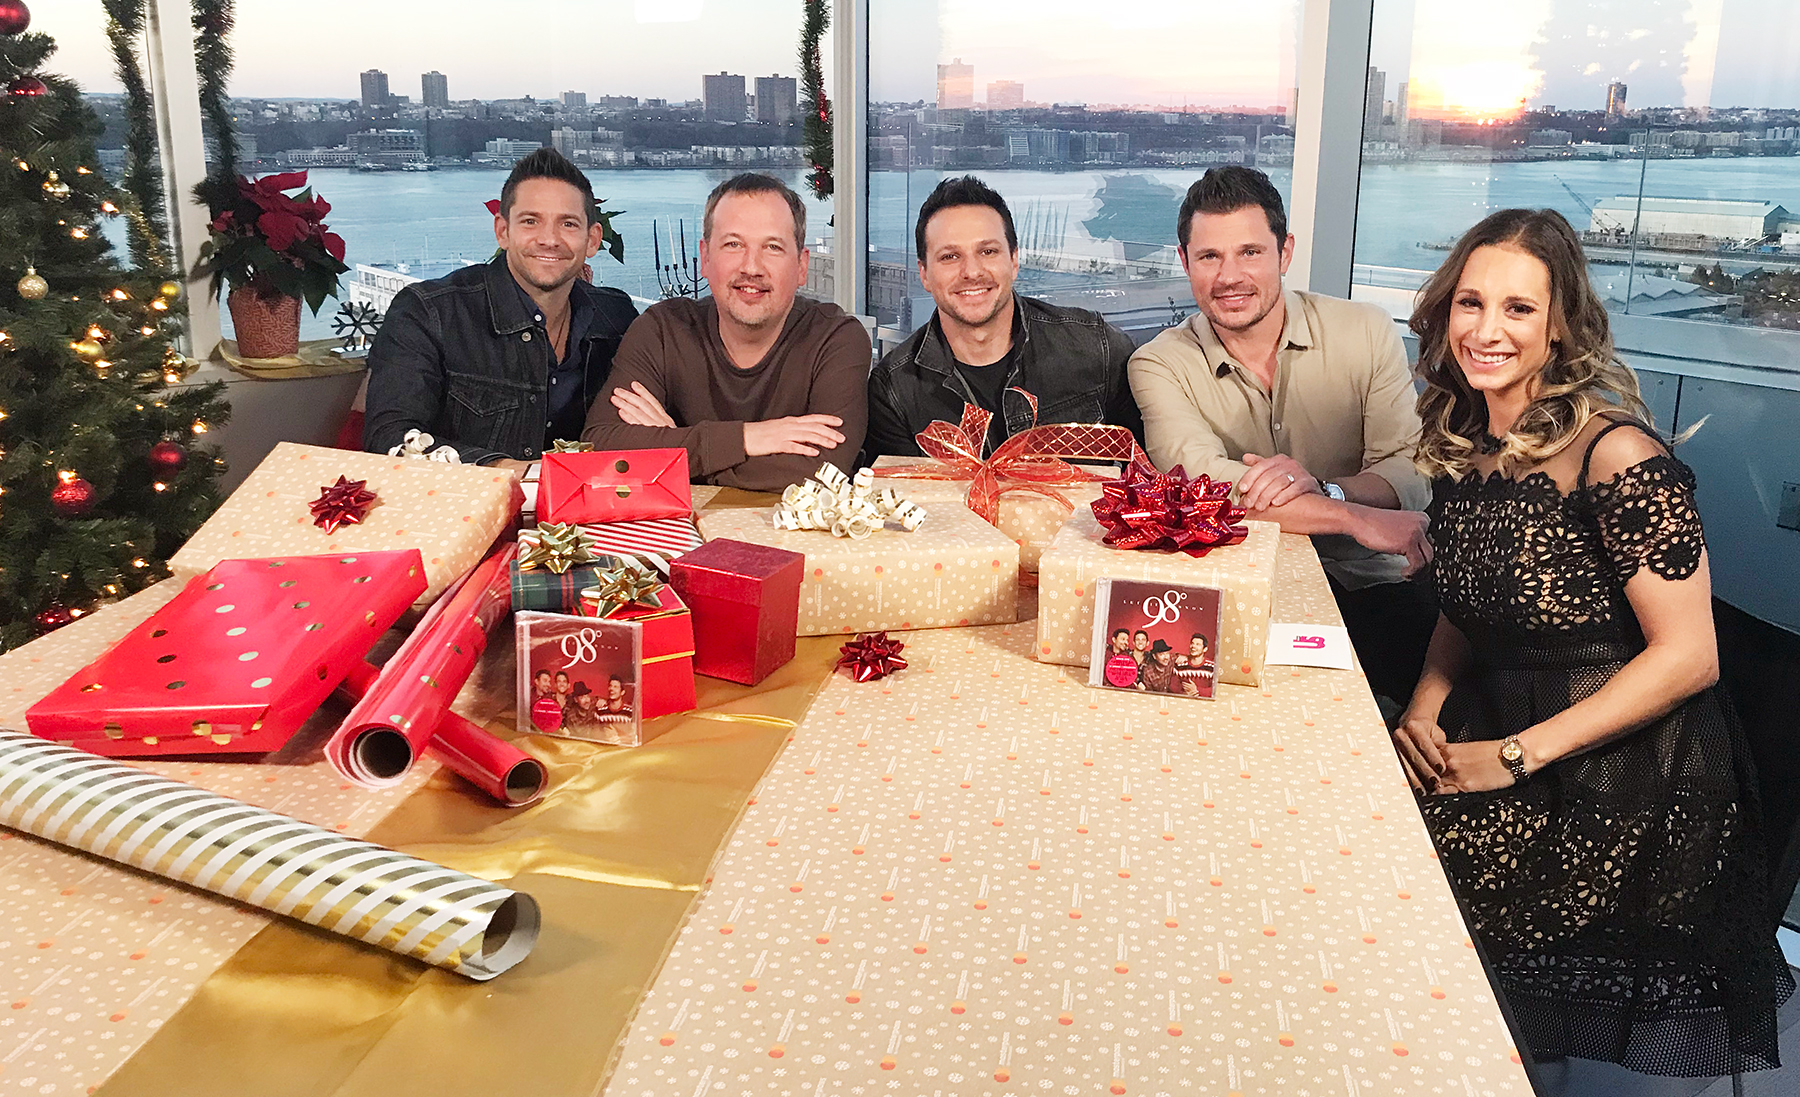 Jeff Timmons, Drew Lachey, Justin Jeffre and Nick Lachey of 98 Degrees